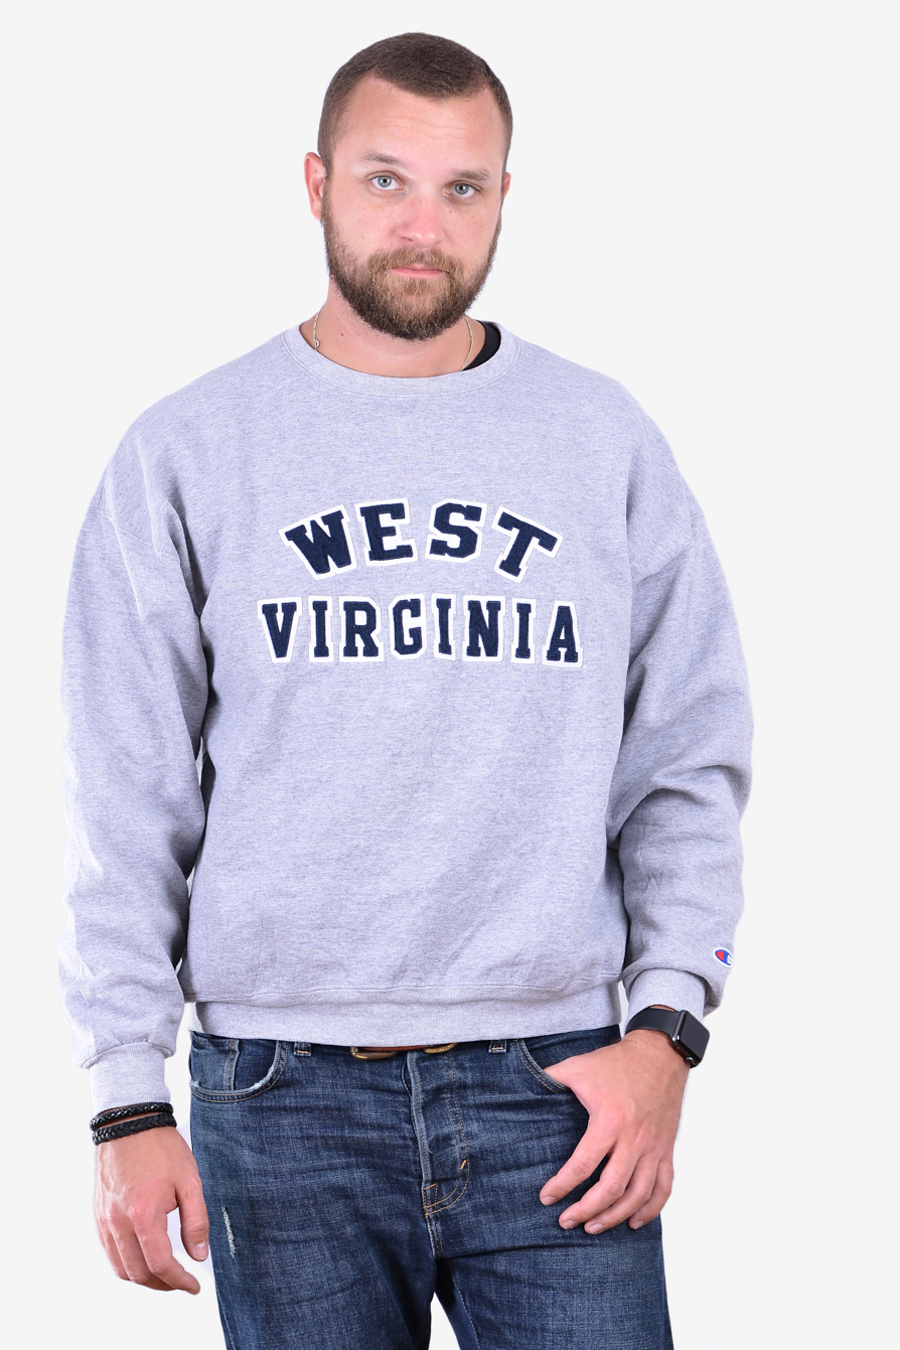 Vintage West Virginia University sweatshirt